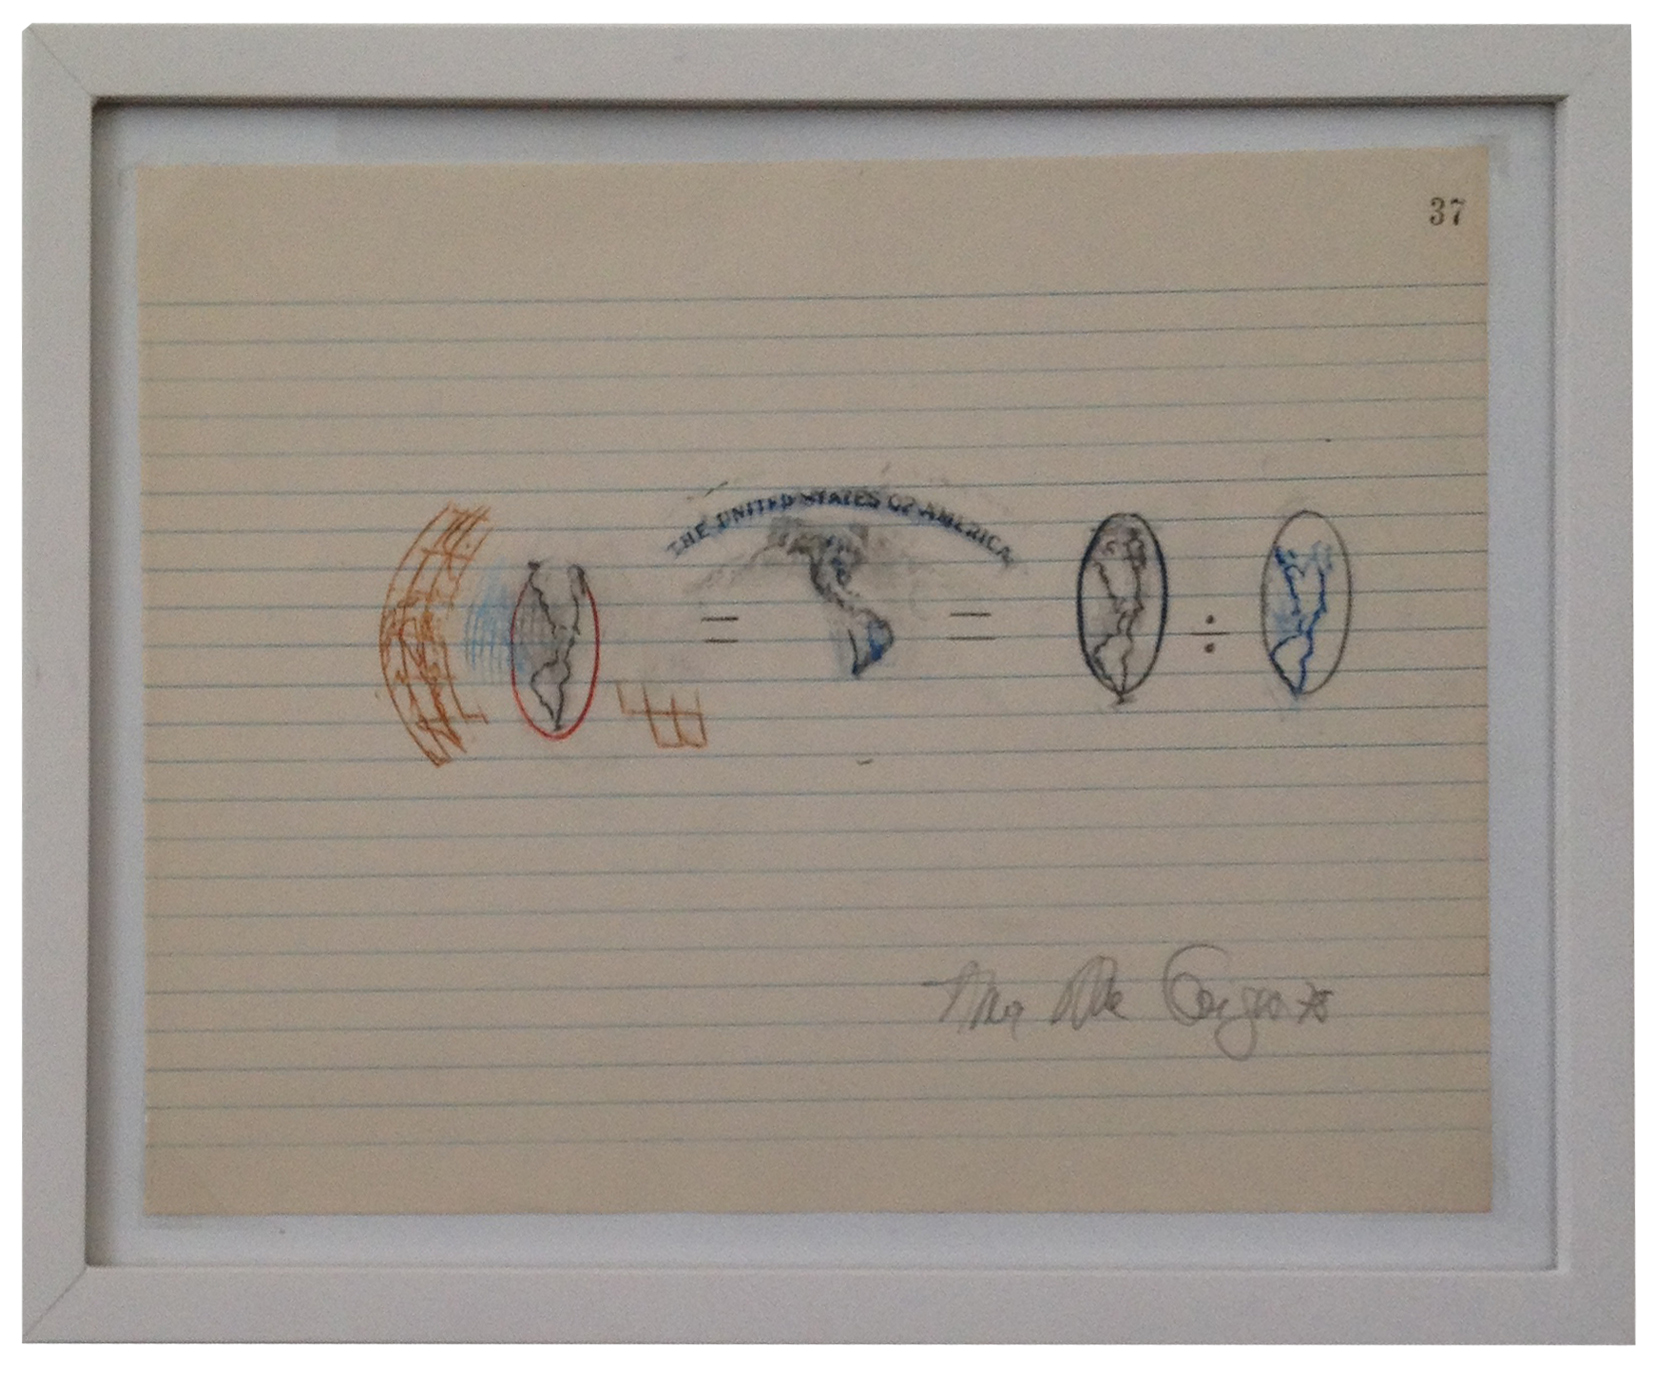 Anna Bella Geiger Variable Equations 1978 Frottage, Graphite, colored pencils on notebook sheet 9 X 13 in